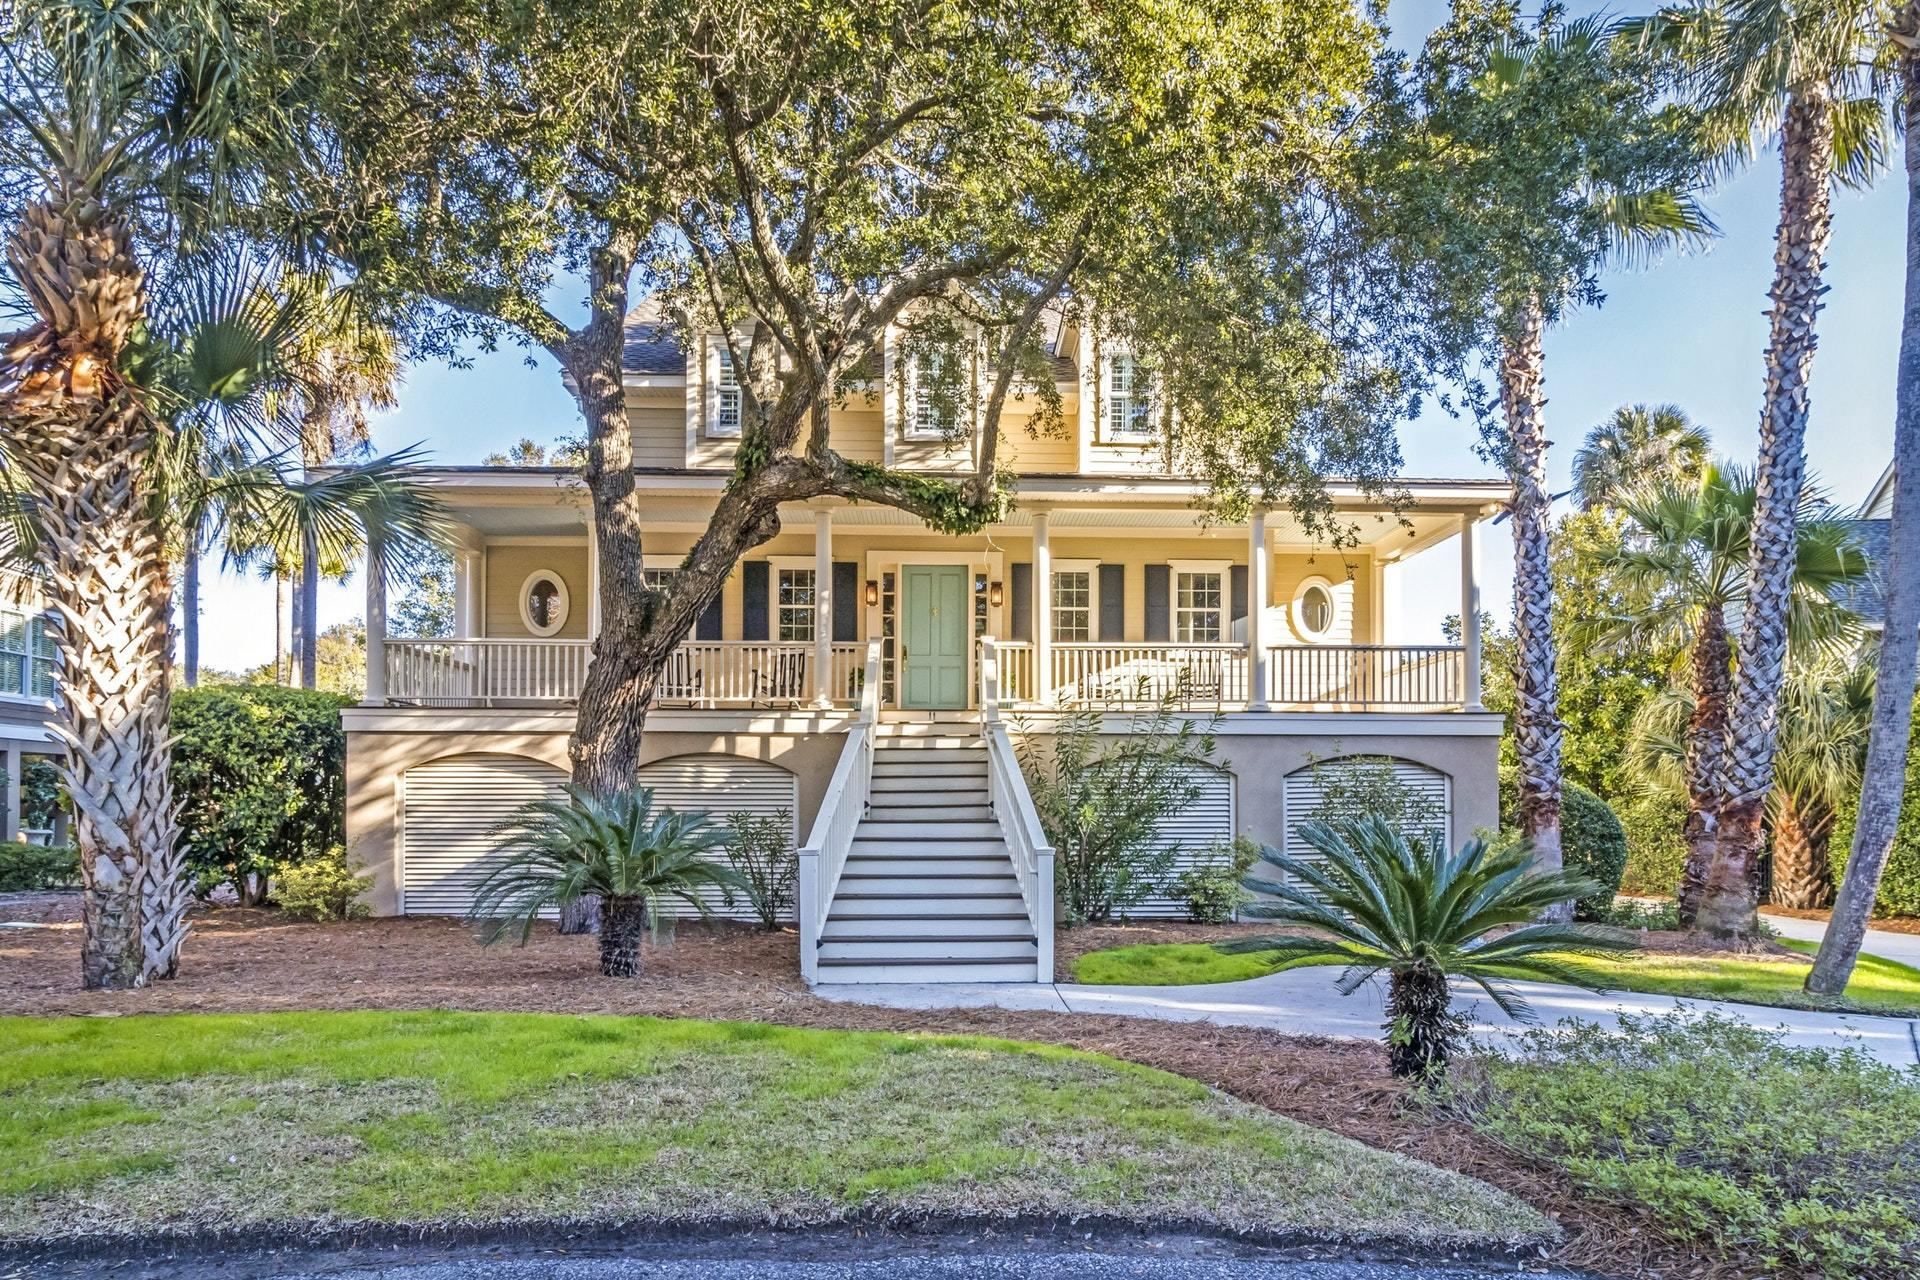 11 Sandwedge Lane Isle of Palms $1,495,000.00